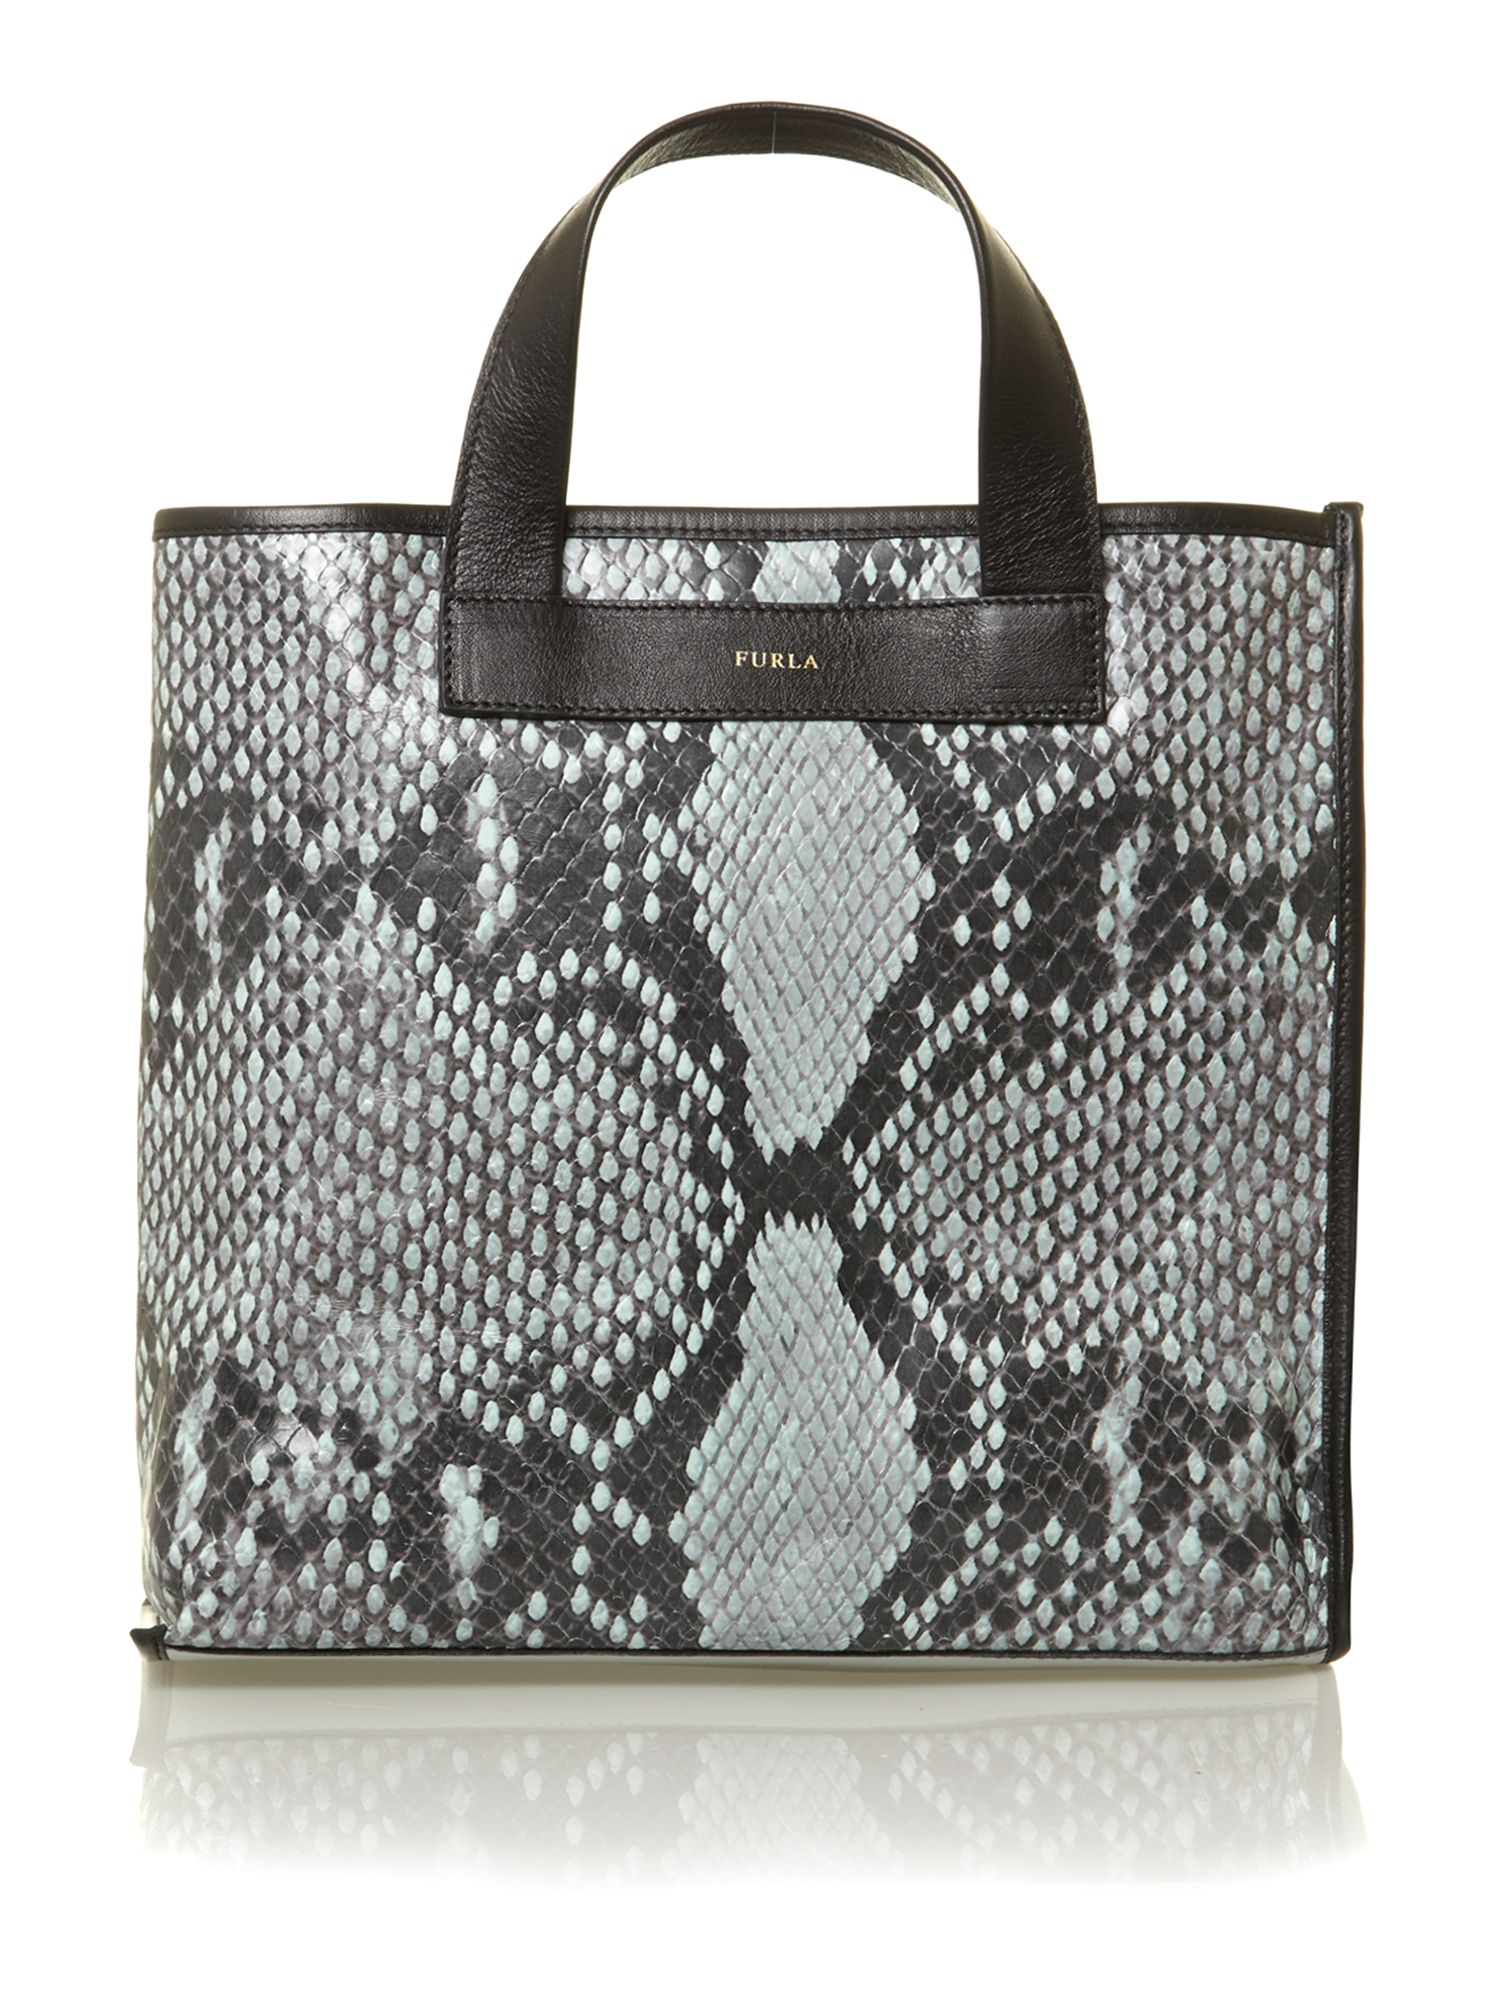 Divide it blue snake large tote bag